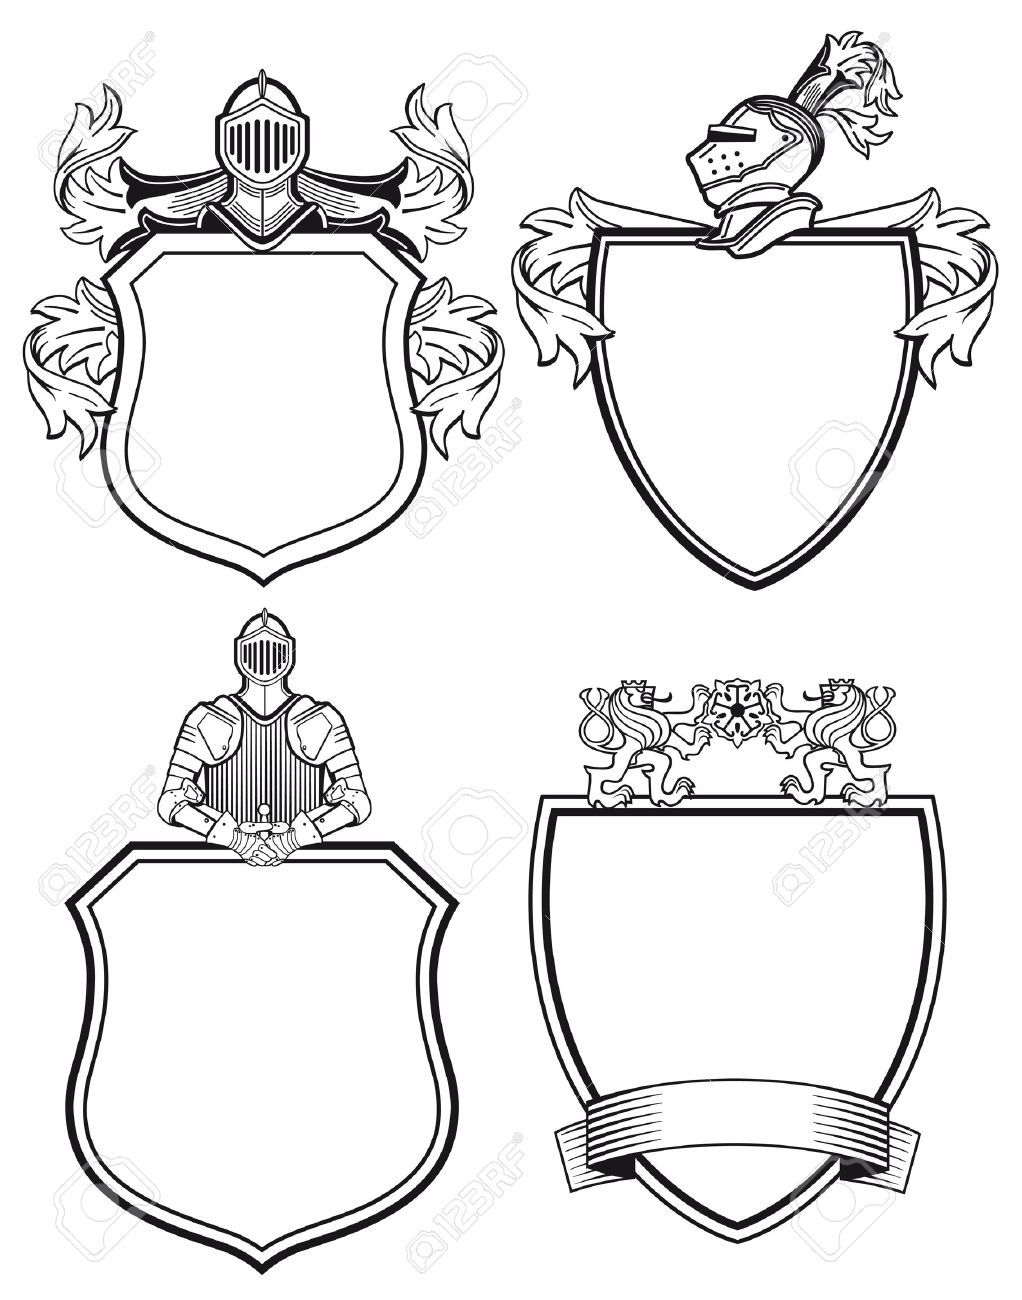 coat of arms: Knight shields and crests Illustration.